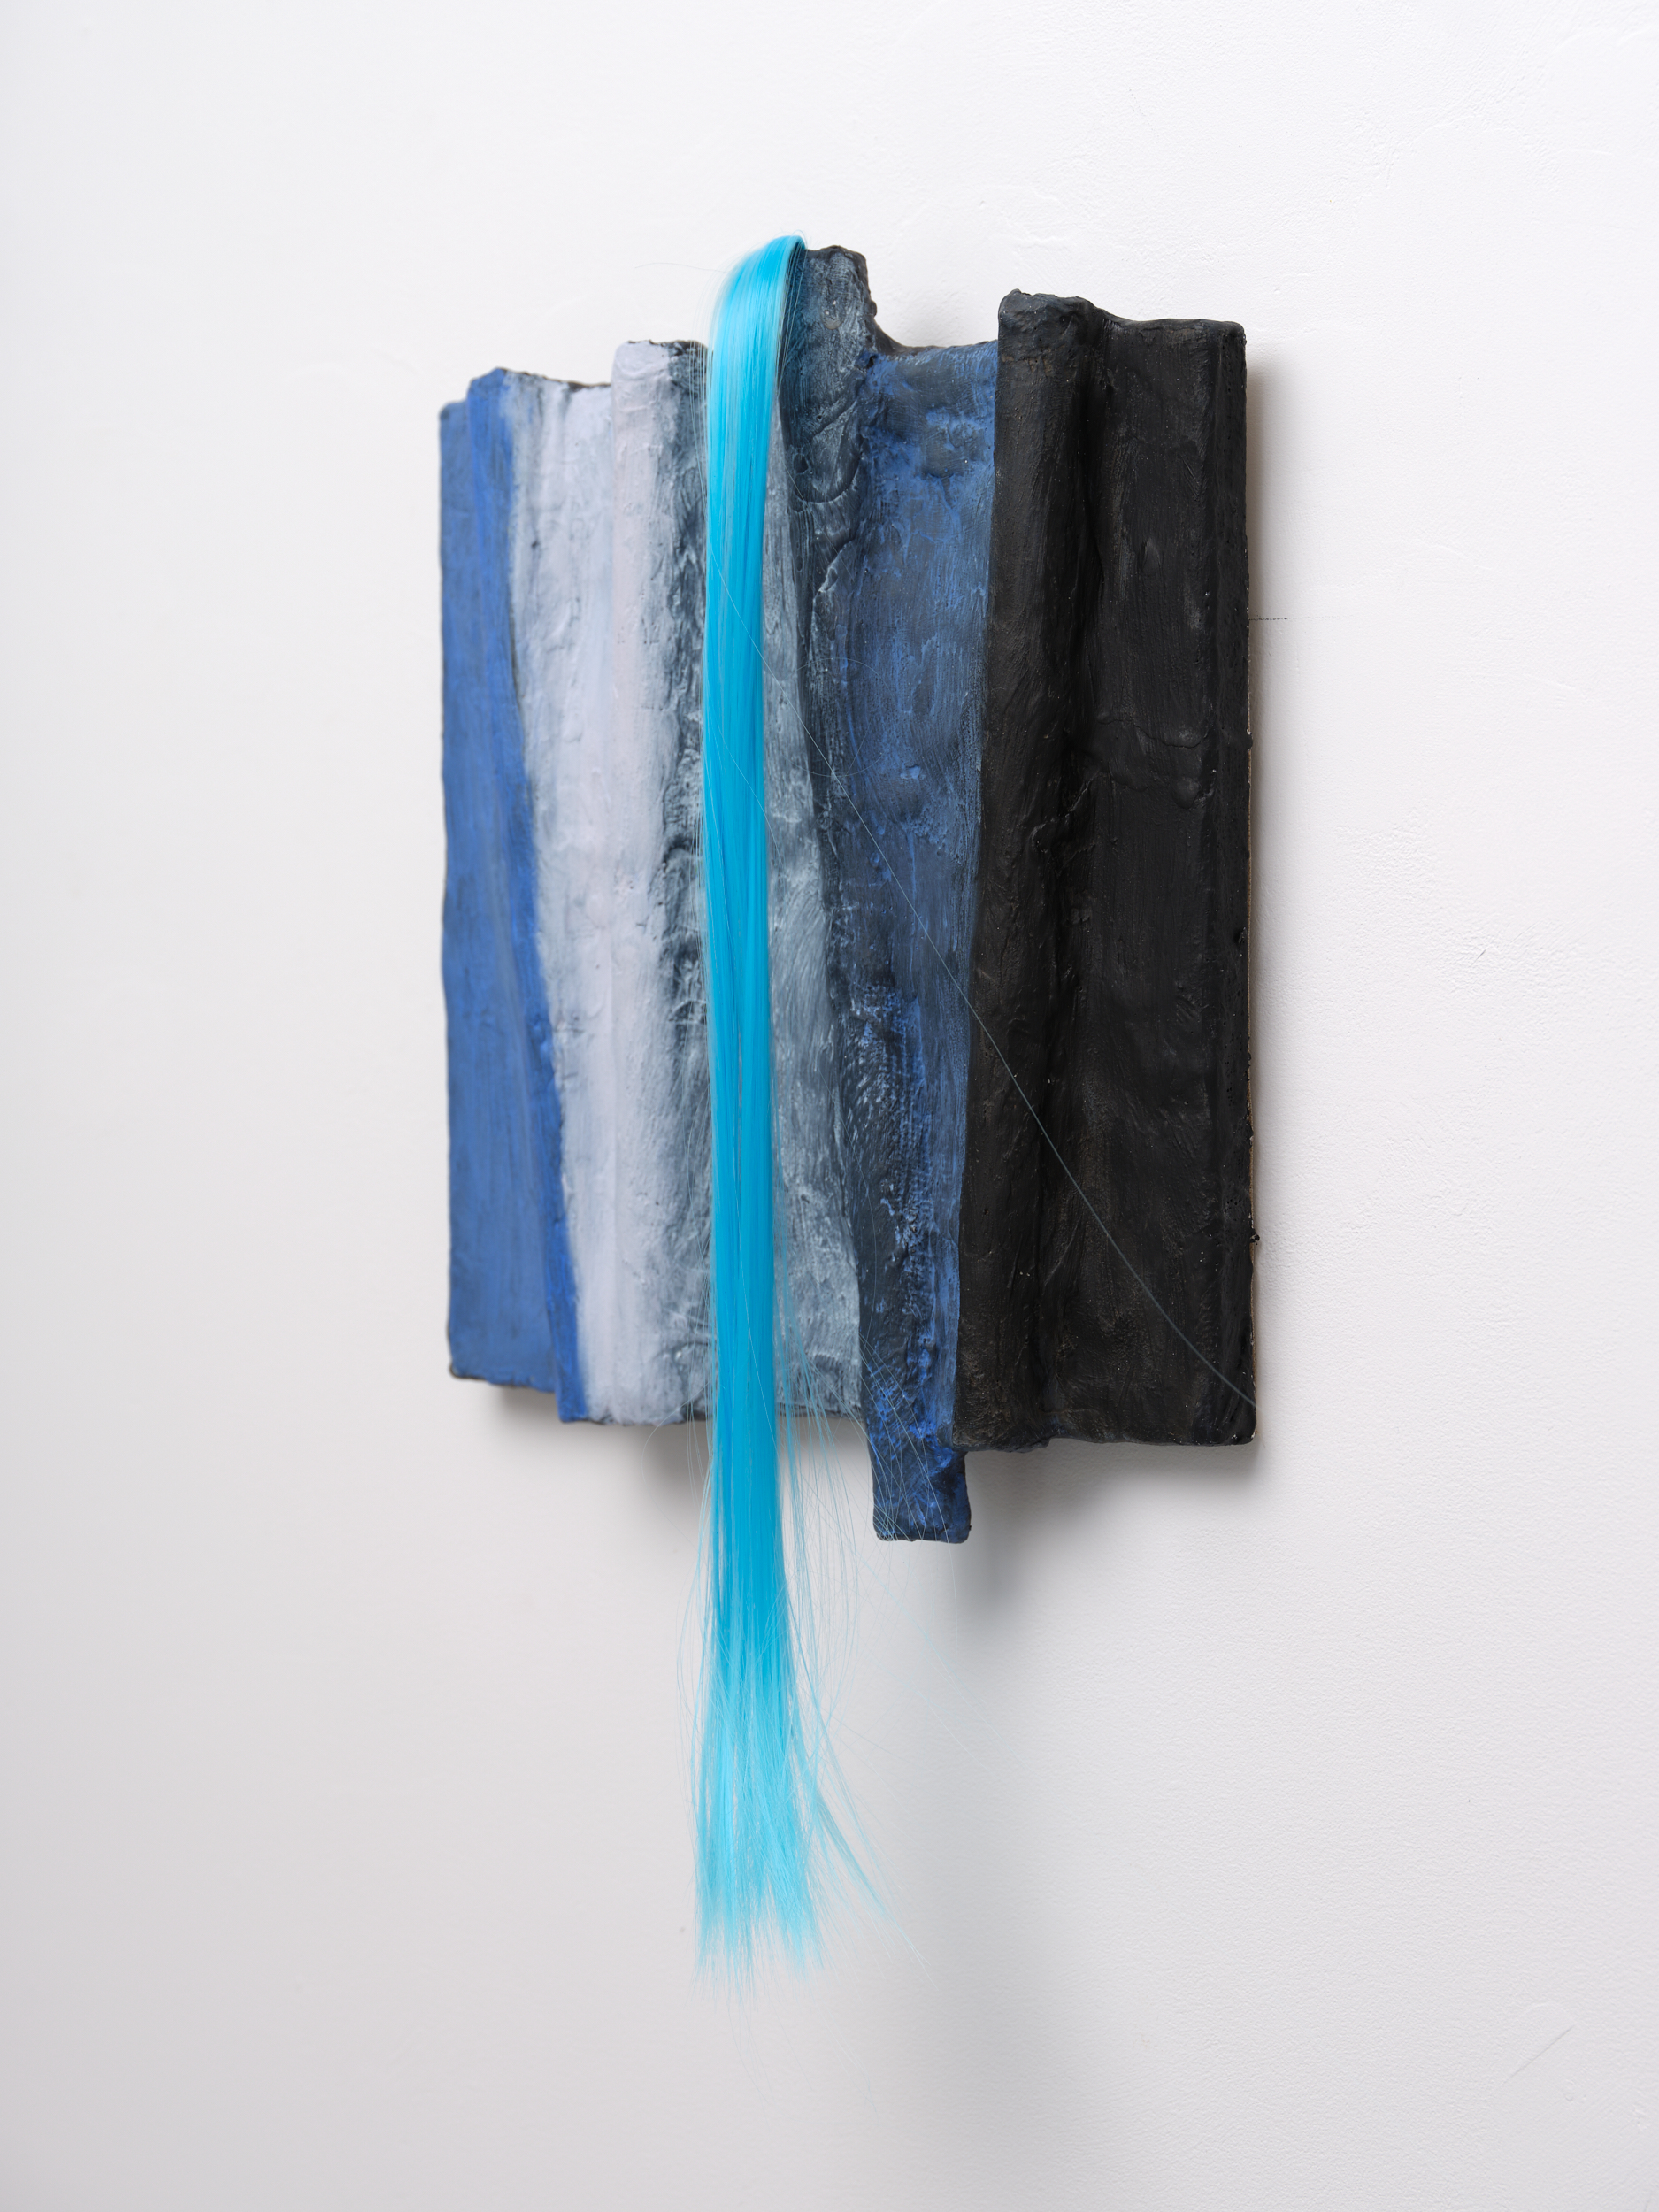 Sculptural painting by Rachel Walters in Plaster bandage, plumbers pipe, acrylic, oil and synthetic hair on stretcher titled Frank